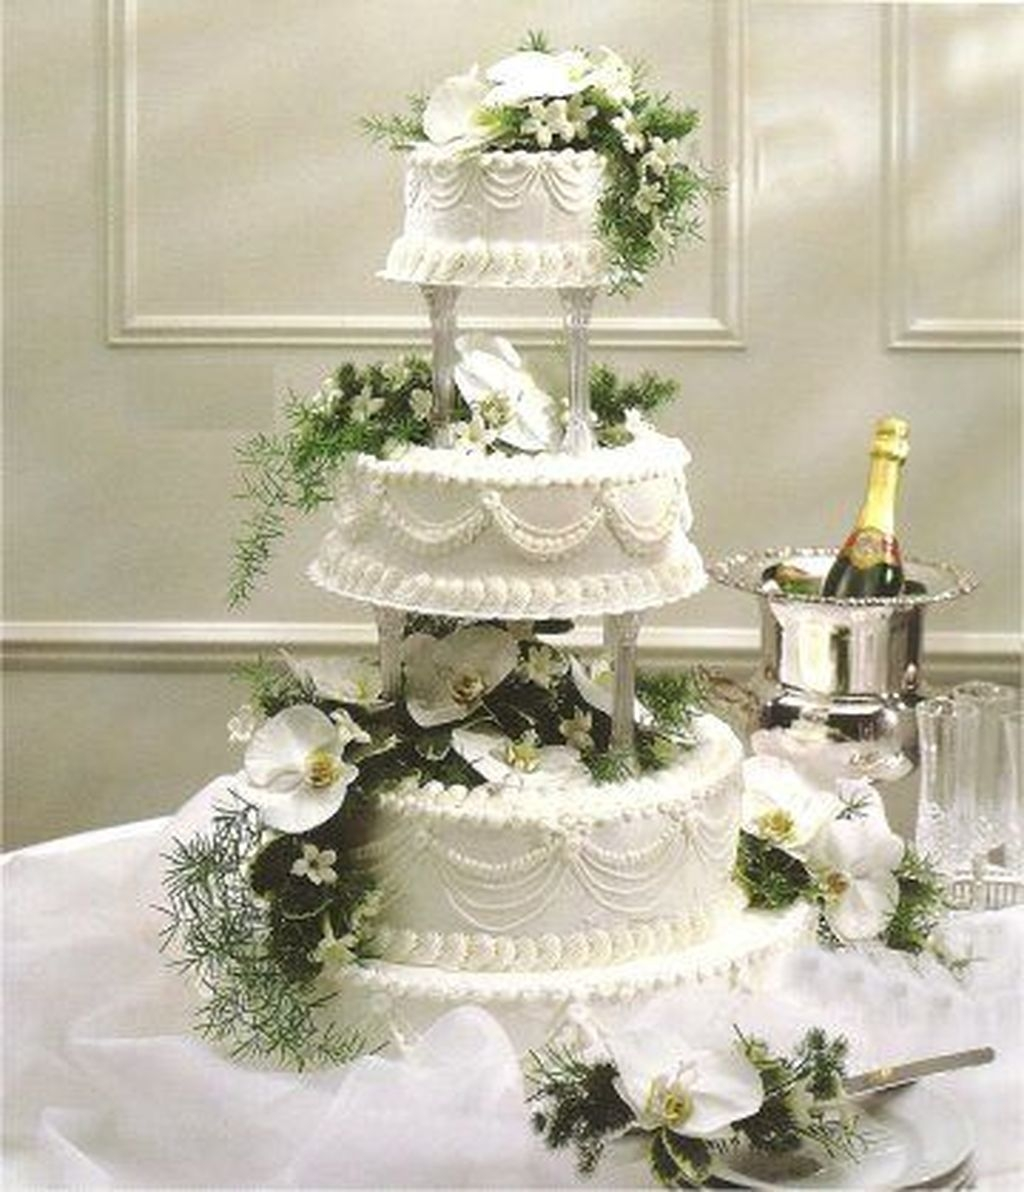 44 Pretty Wedding Cake Ideas For Old Fashioned Addicfashion